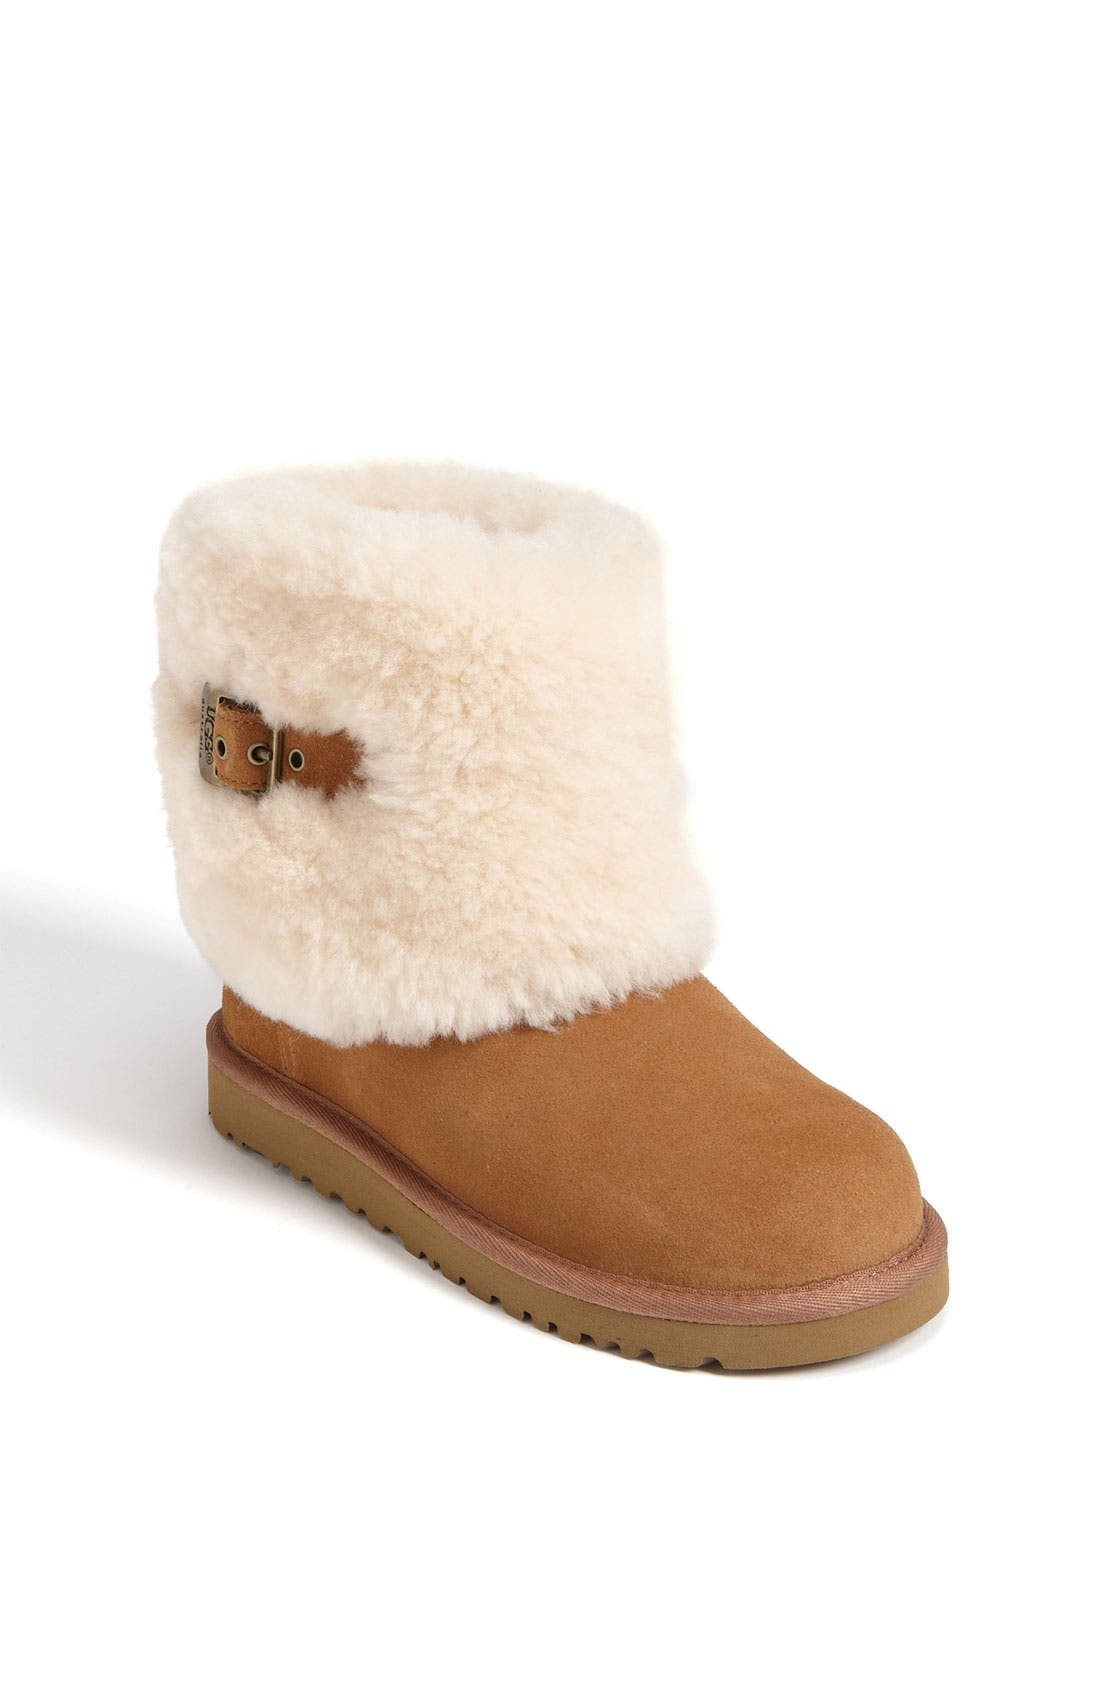 Alternate Image 1 Selected - UGG® 'Ellee' Boot (Toddler, Little Kid & Big Kid)